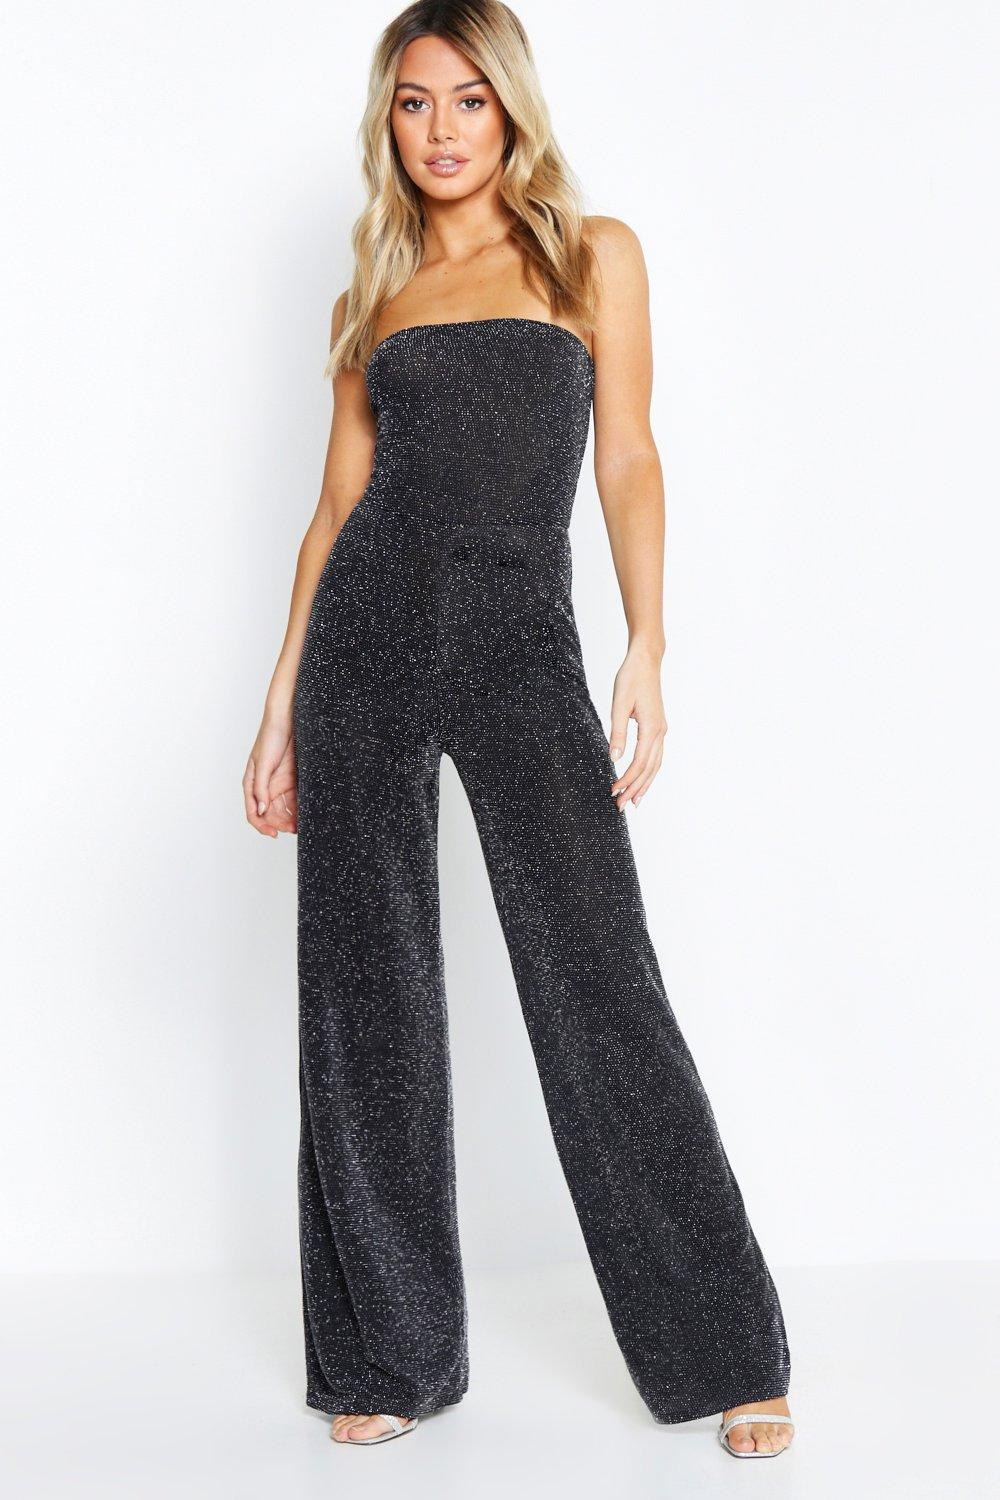 boohoo Womens Petite Strapless Wide Leg Sparkle Jumpsuit - Black - 14, Black